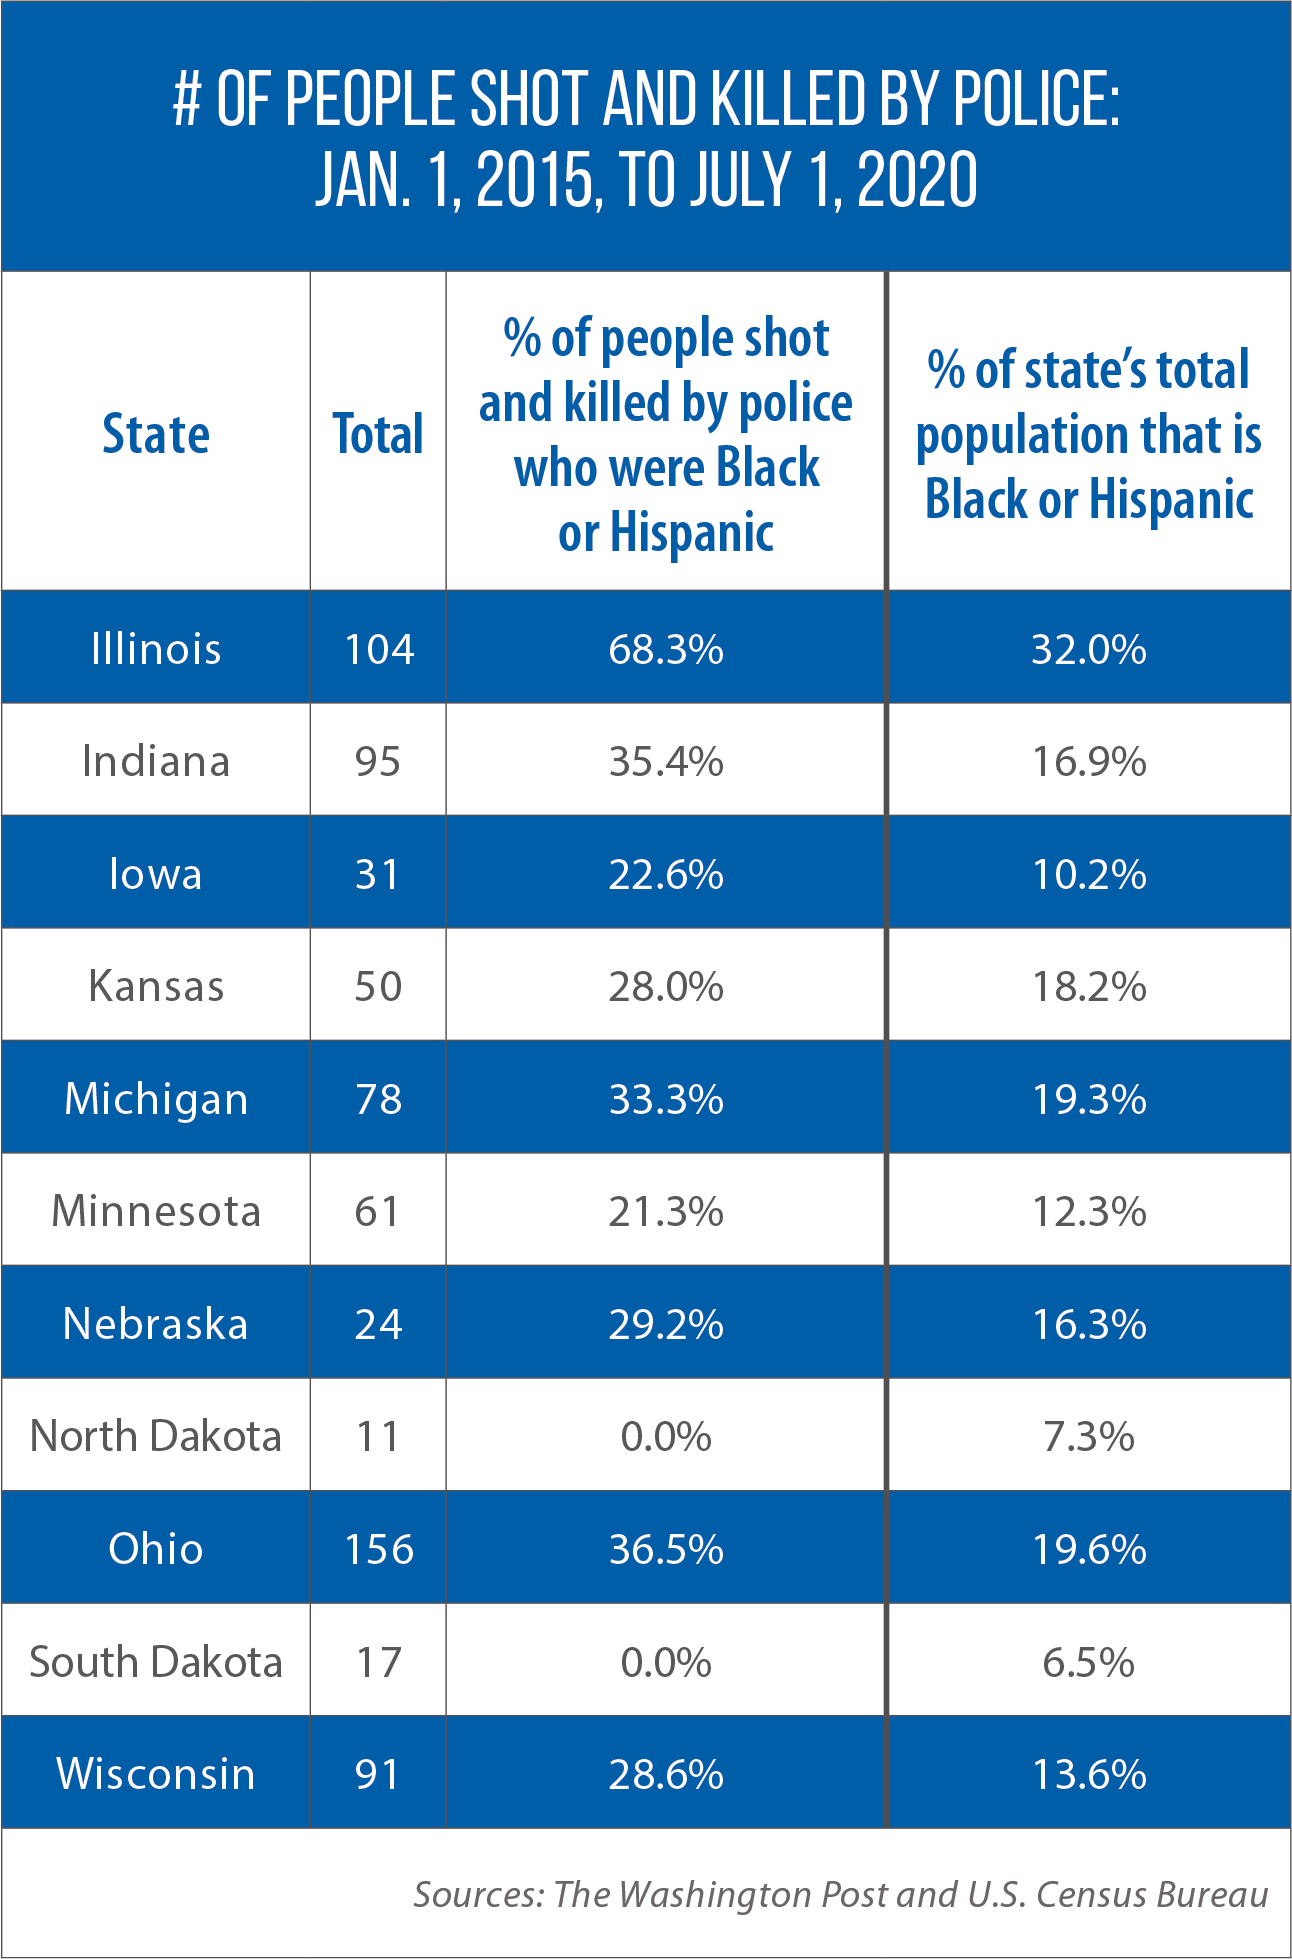 Table showing number of people shot and killed by police in the Midwest: Jan. 1, 2015, to July 1, 2020